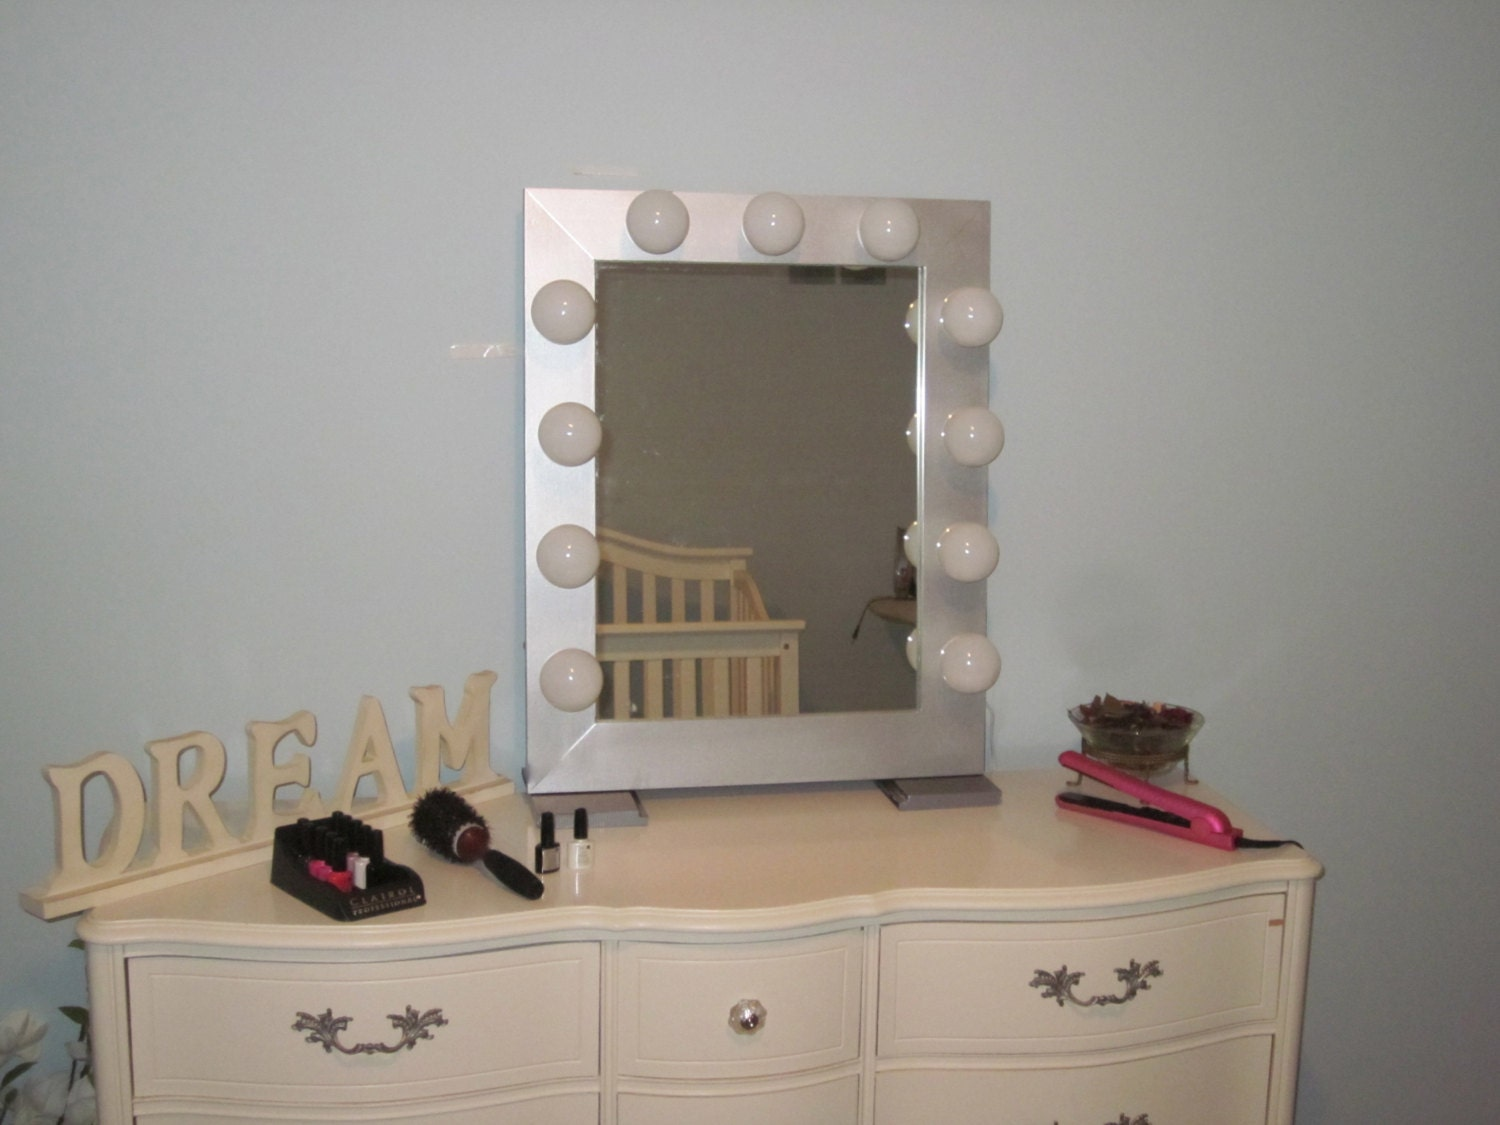 Vanity Mirror With Lights Hollywood Style : Hollywood Style Lighted Vanity Mirror Metallic Silver Slim